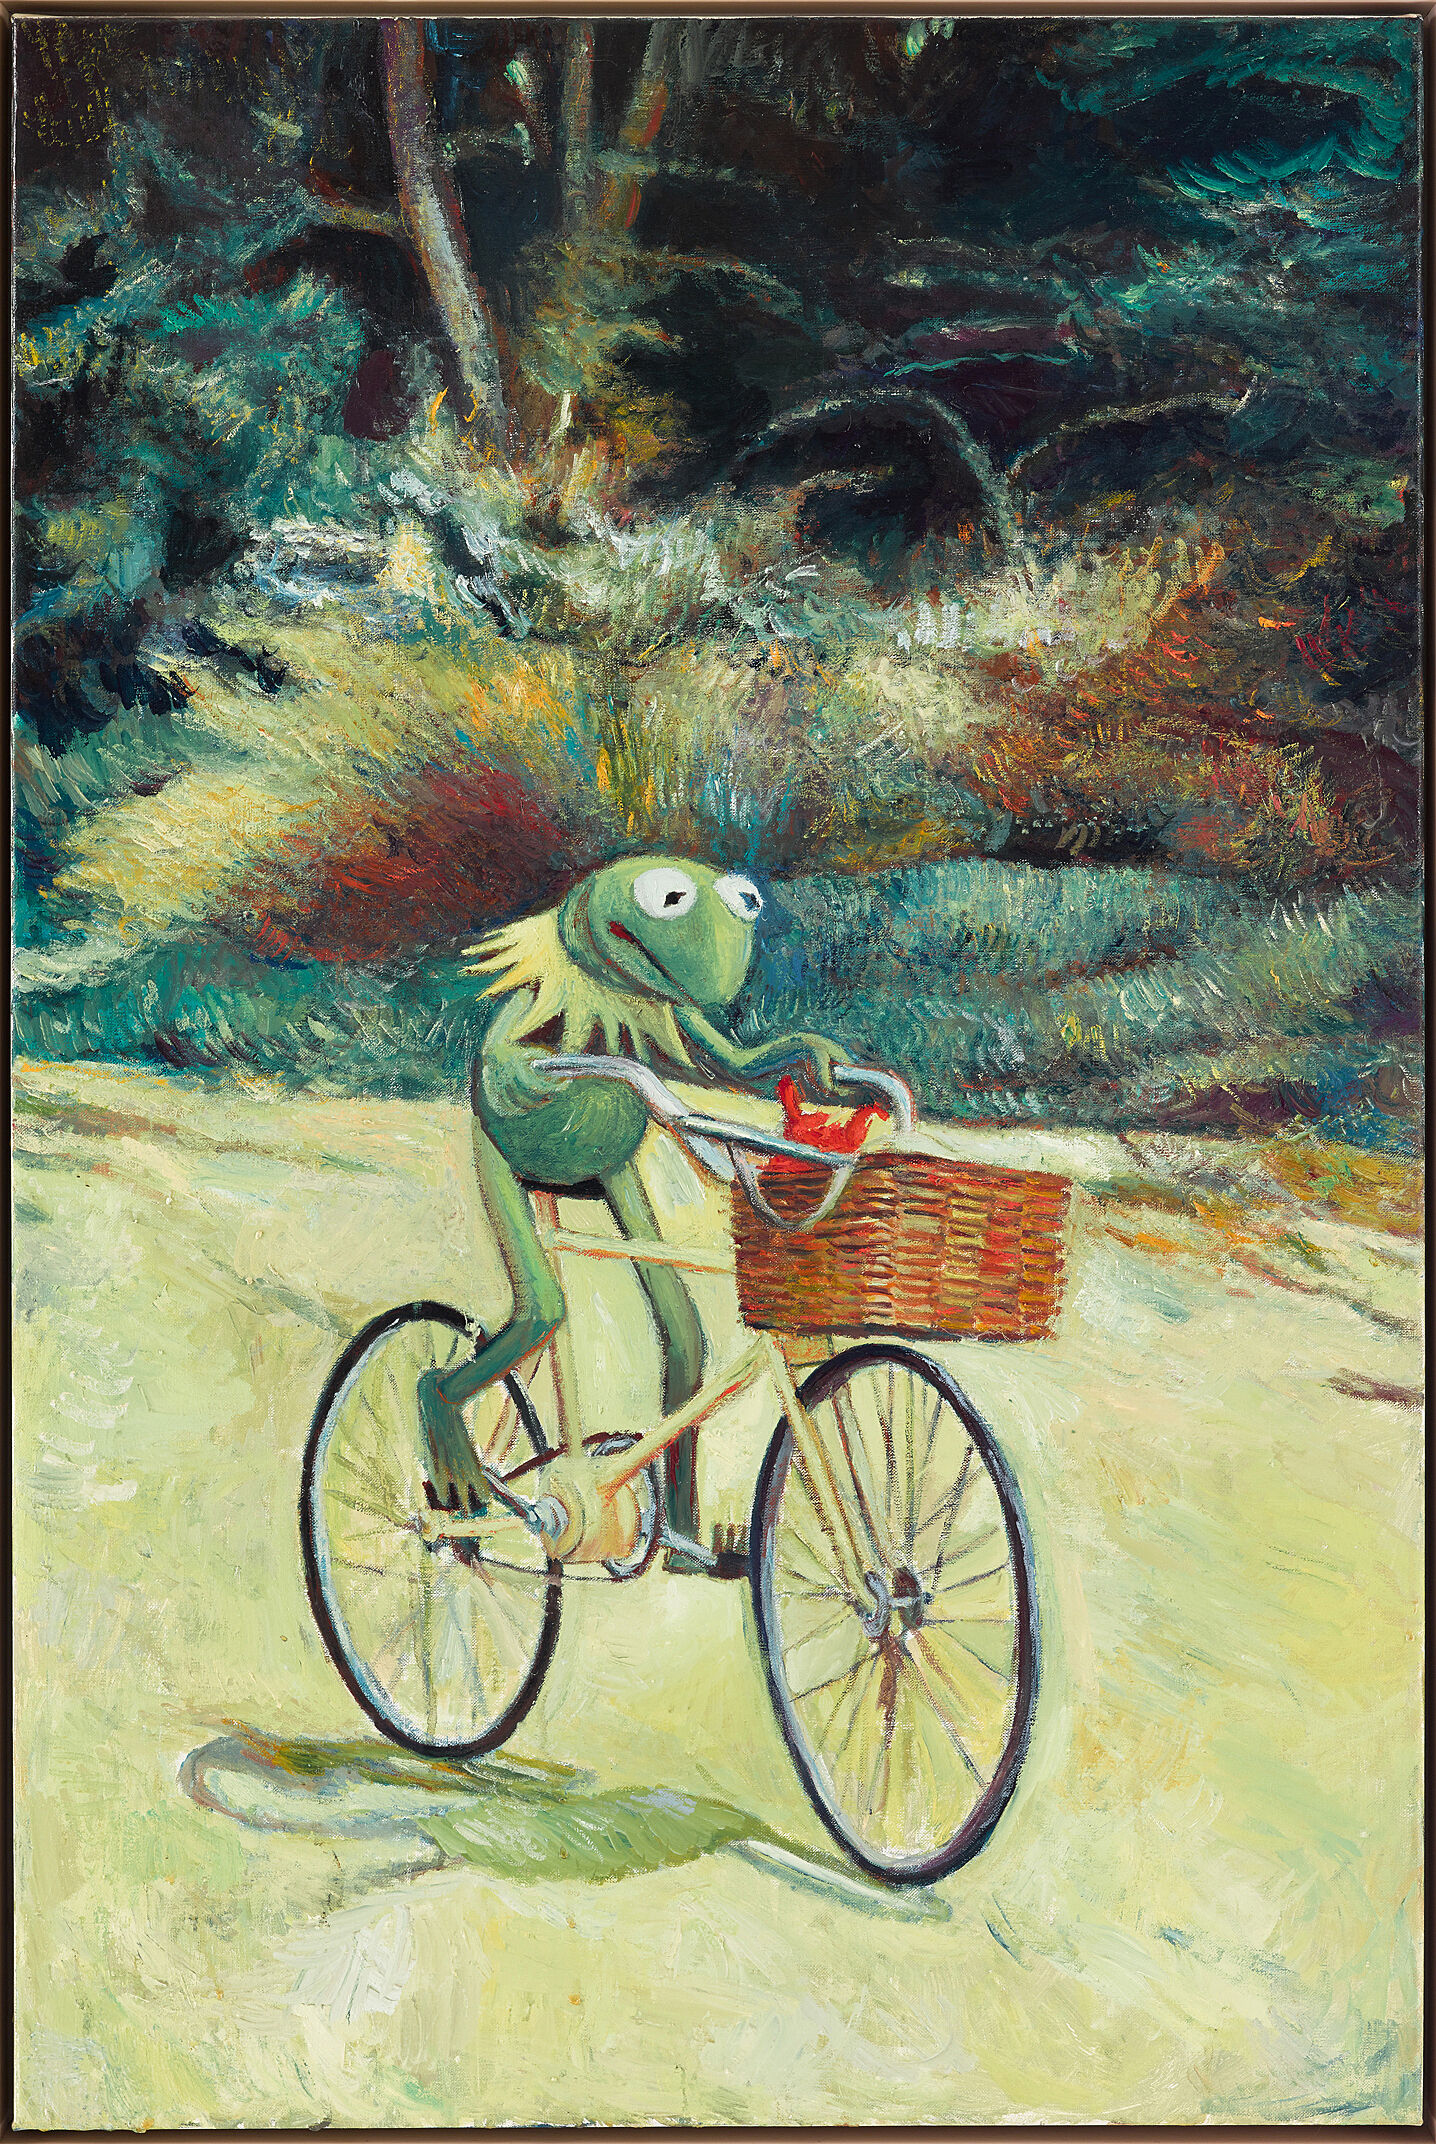 A painting of Kermit the Frog riding a bike.